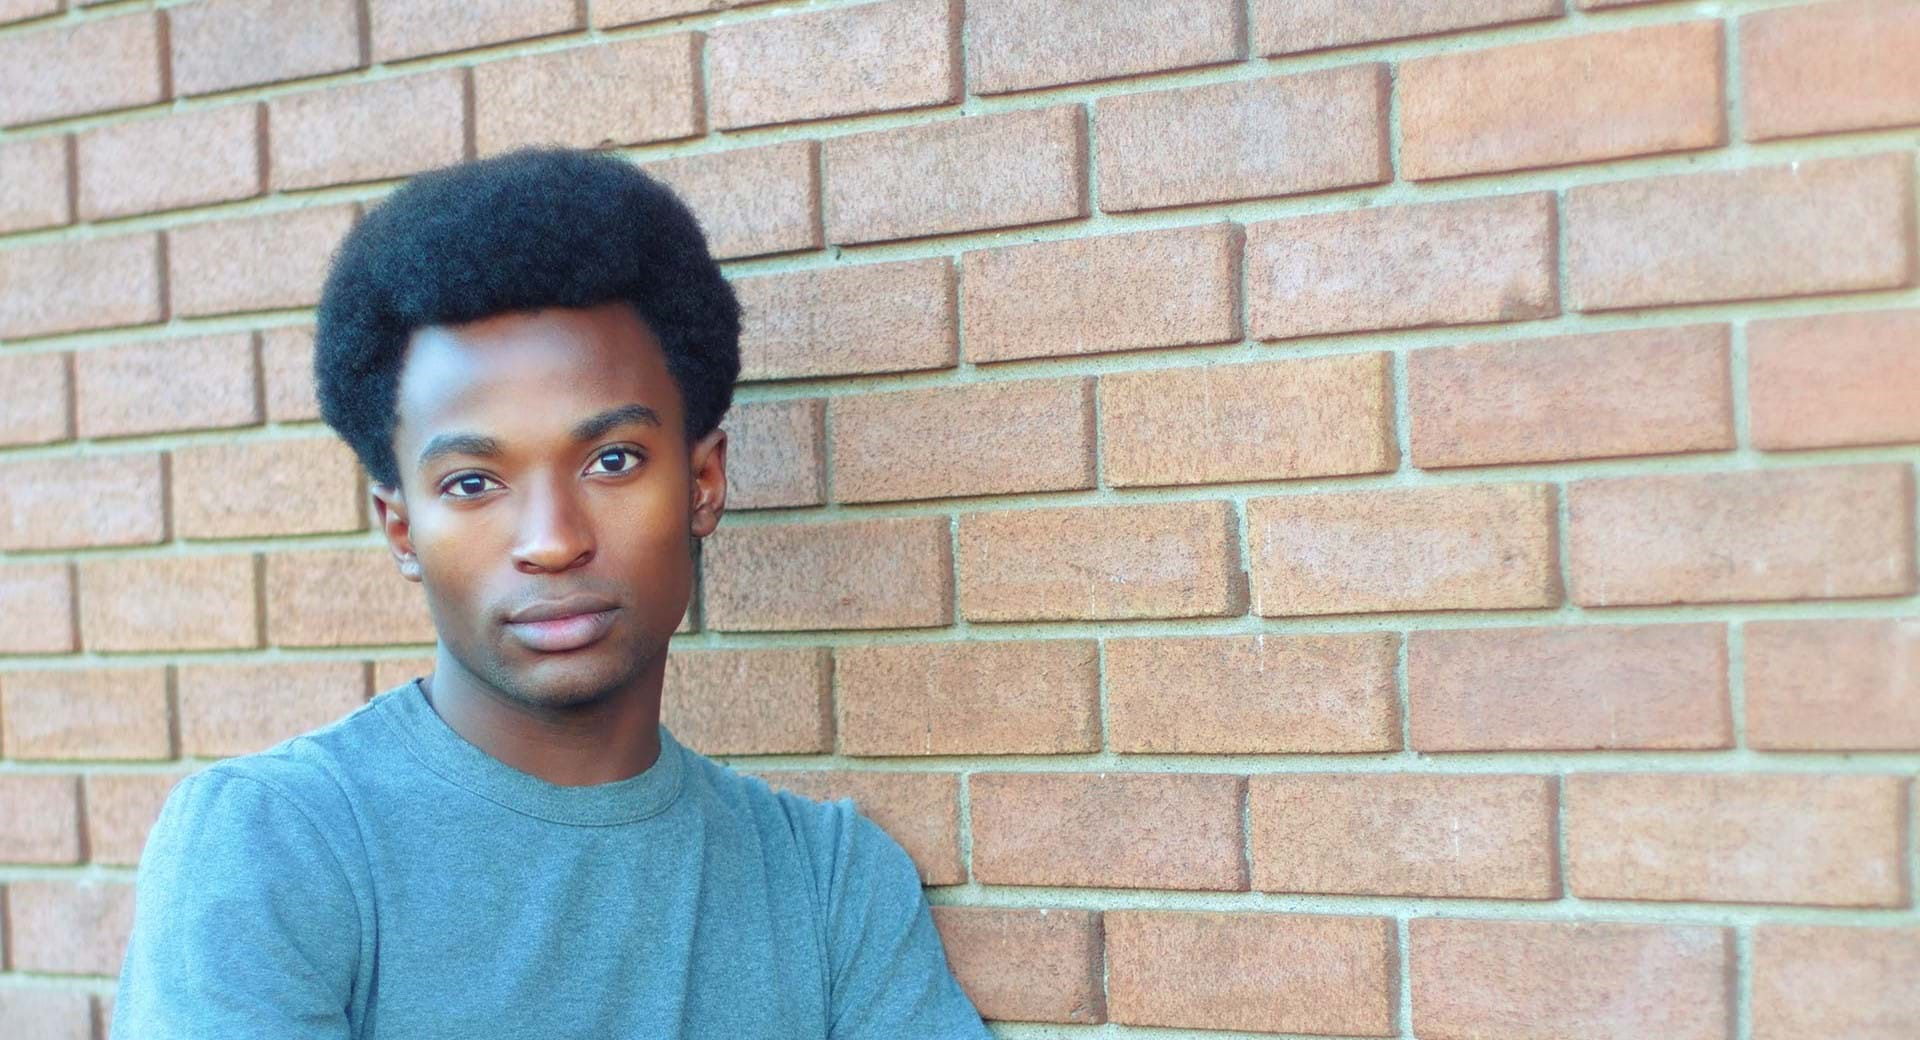 Centrepoint charity helped Kasim to recover from youth homelessness